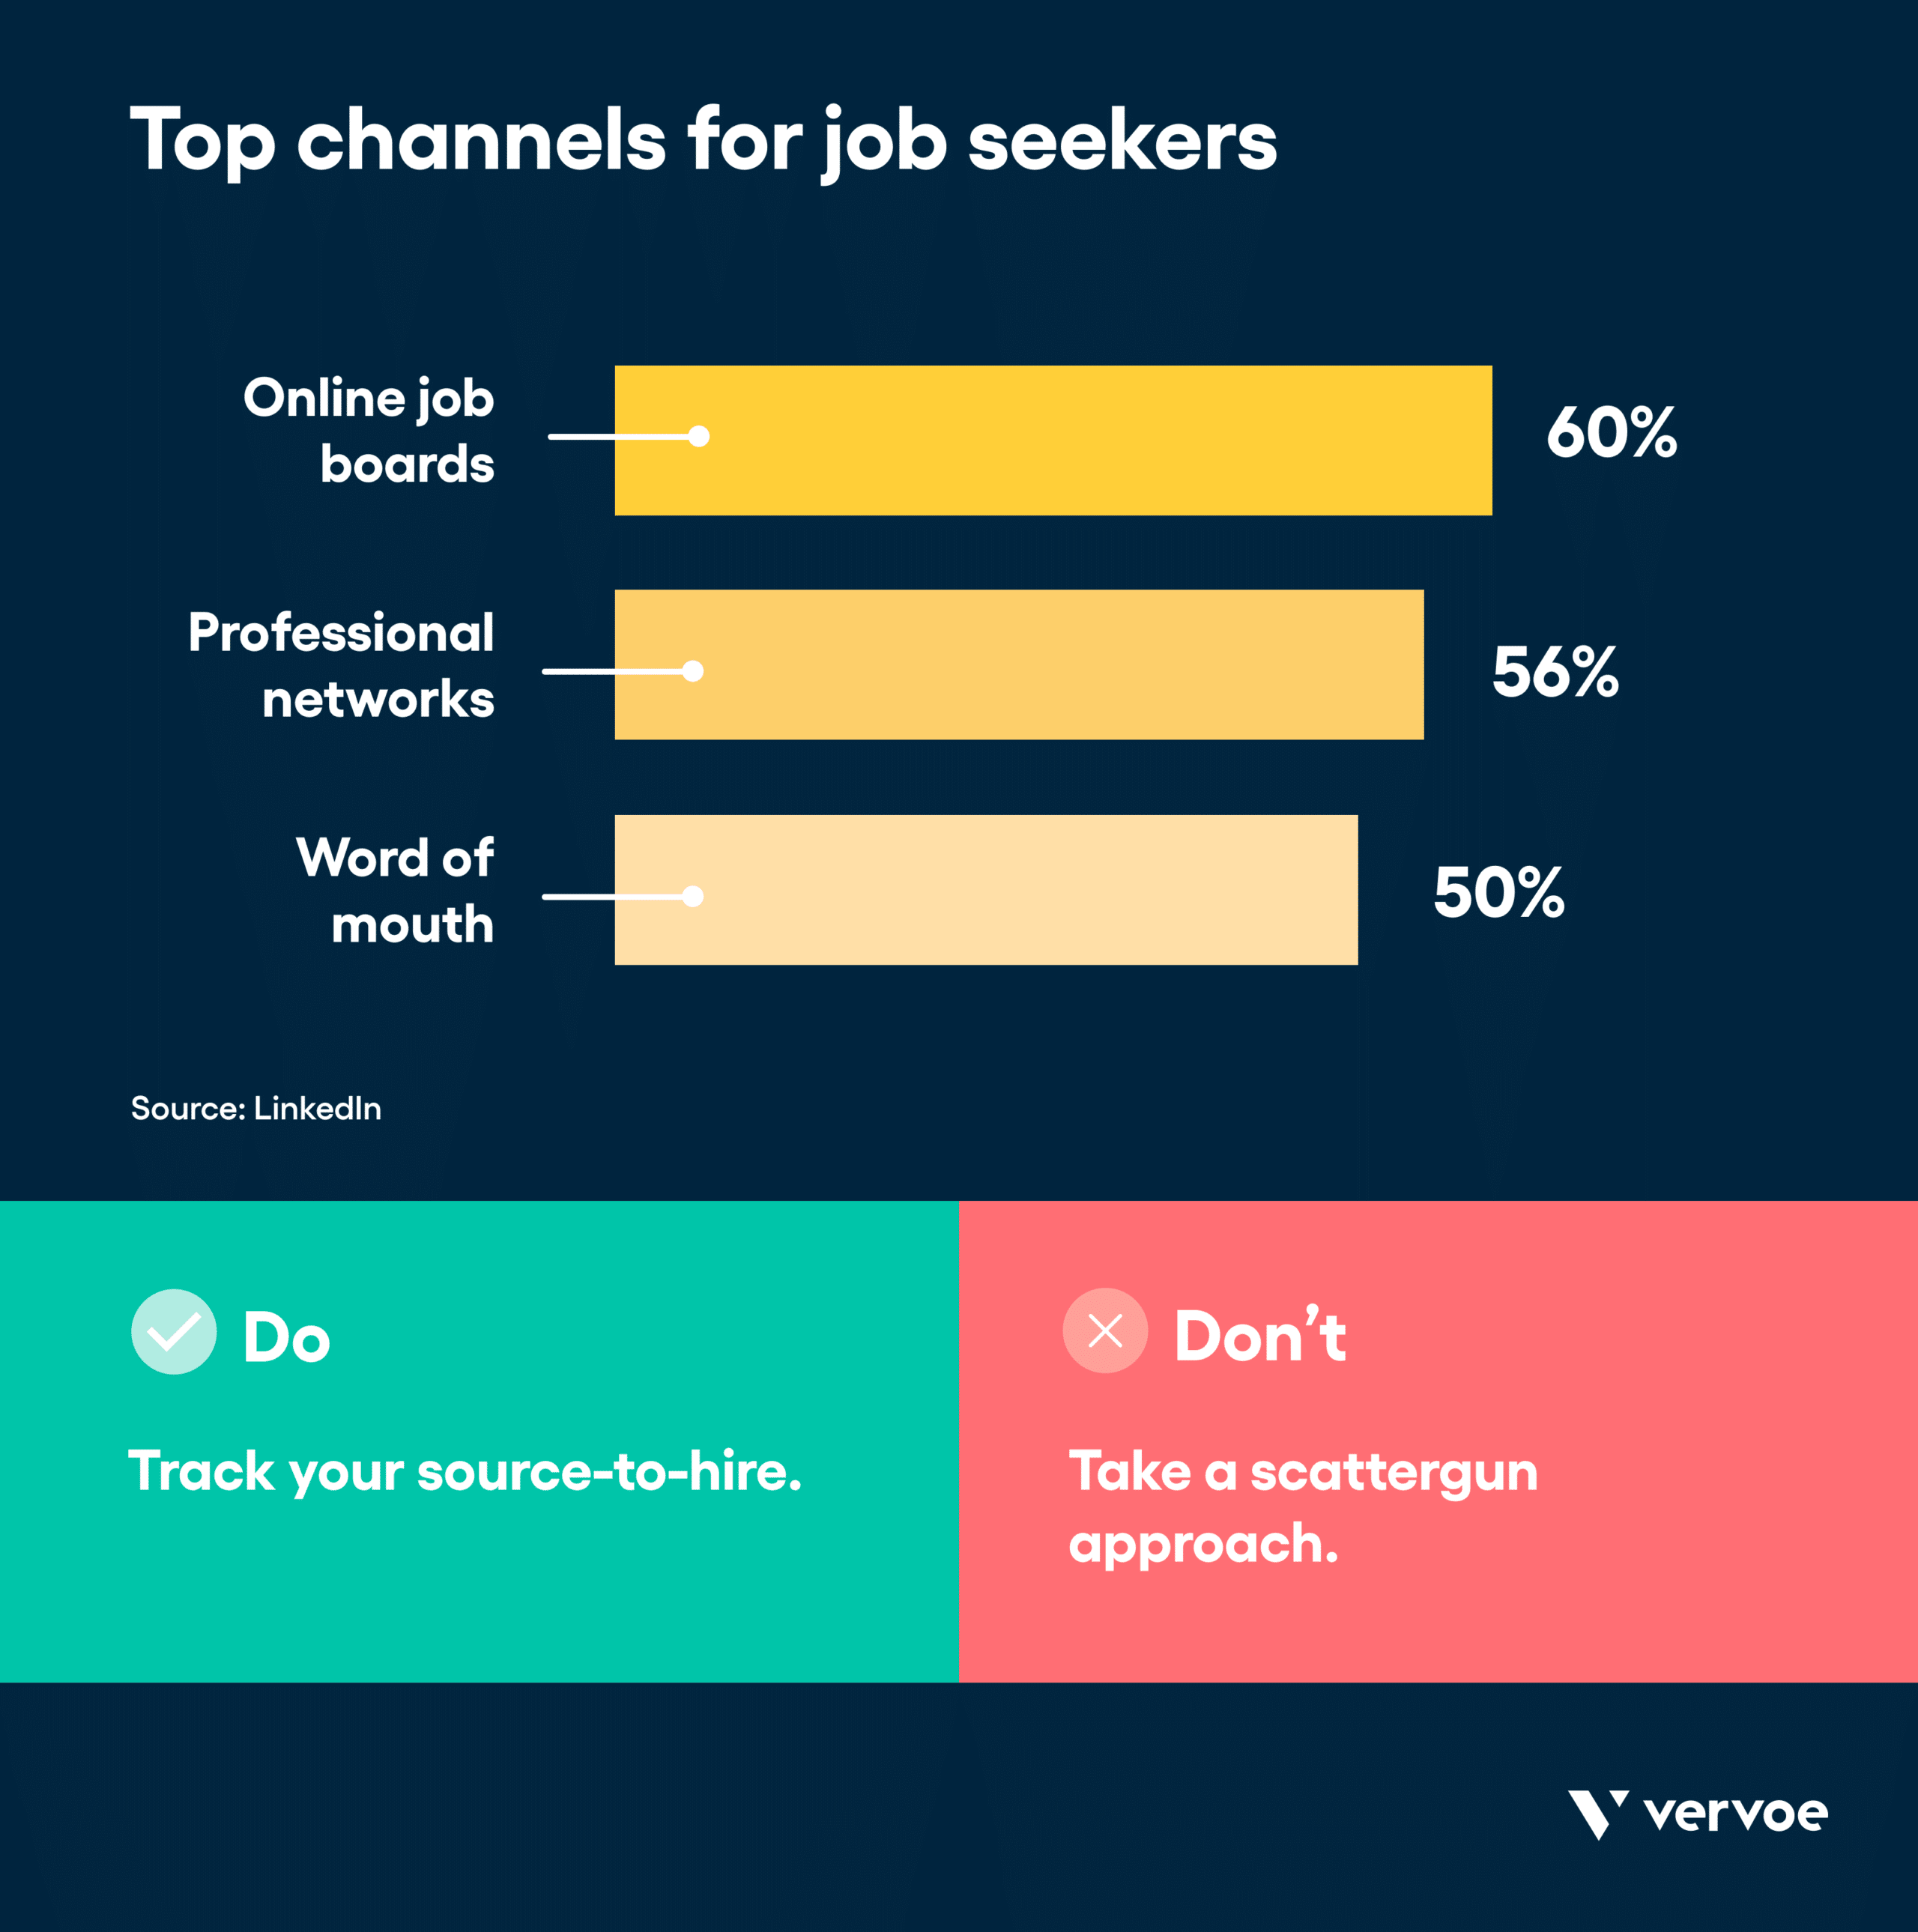 Infographic showing top channels for job seekers